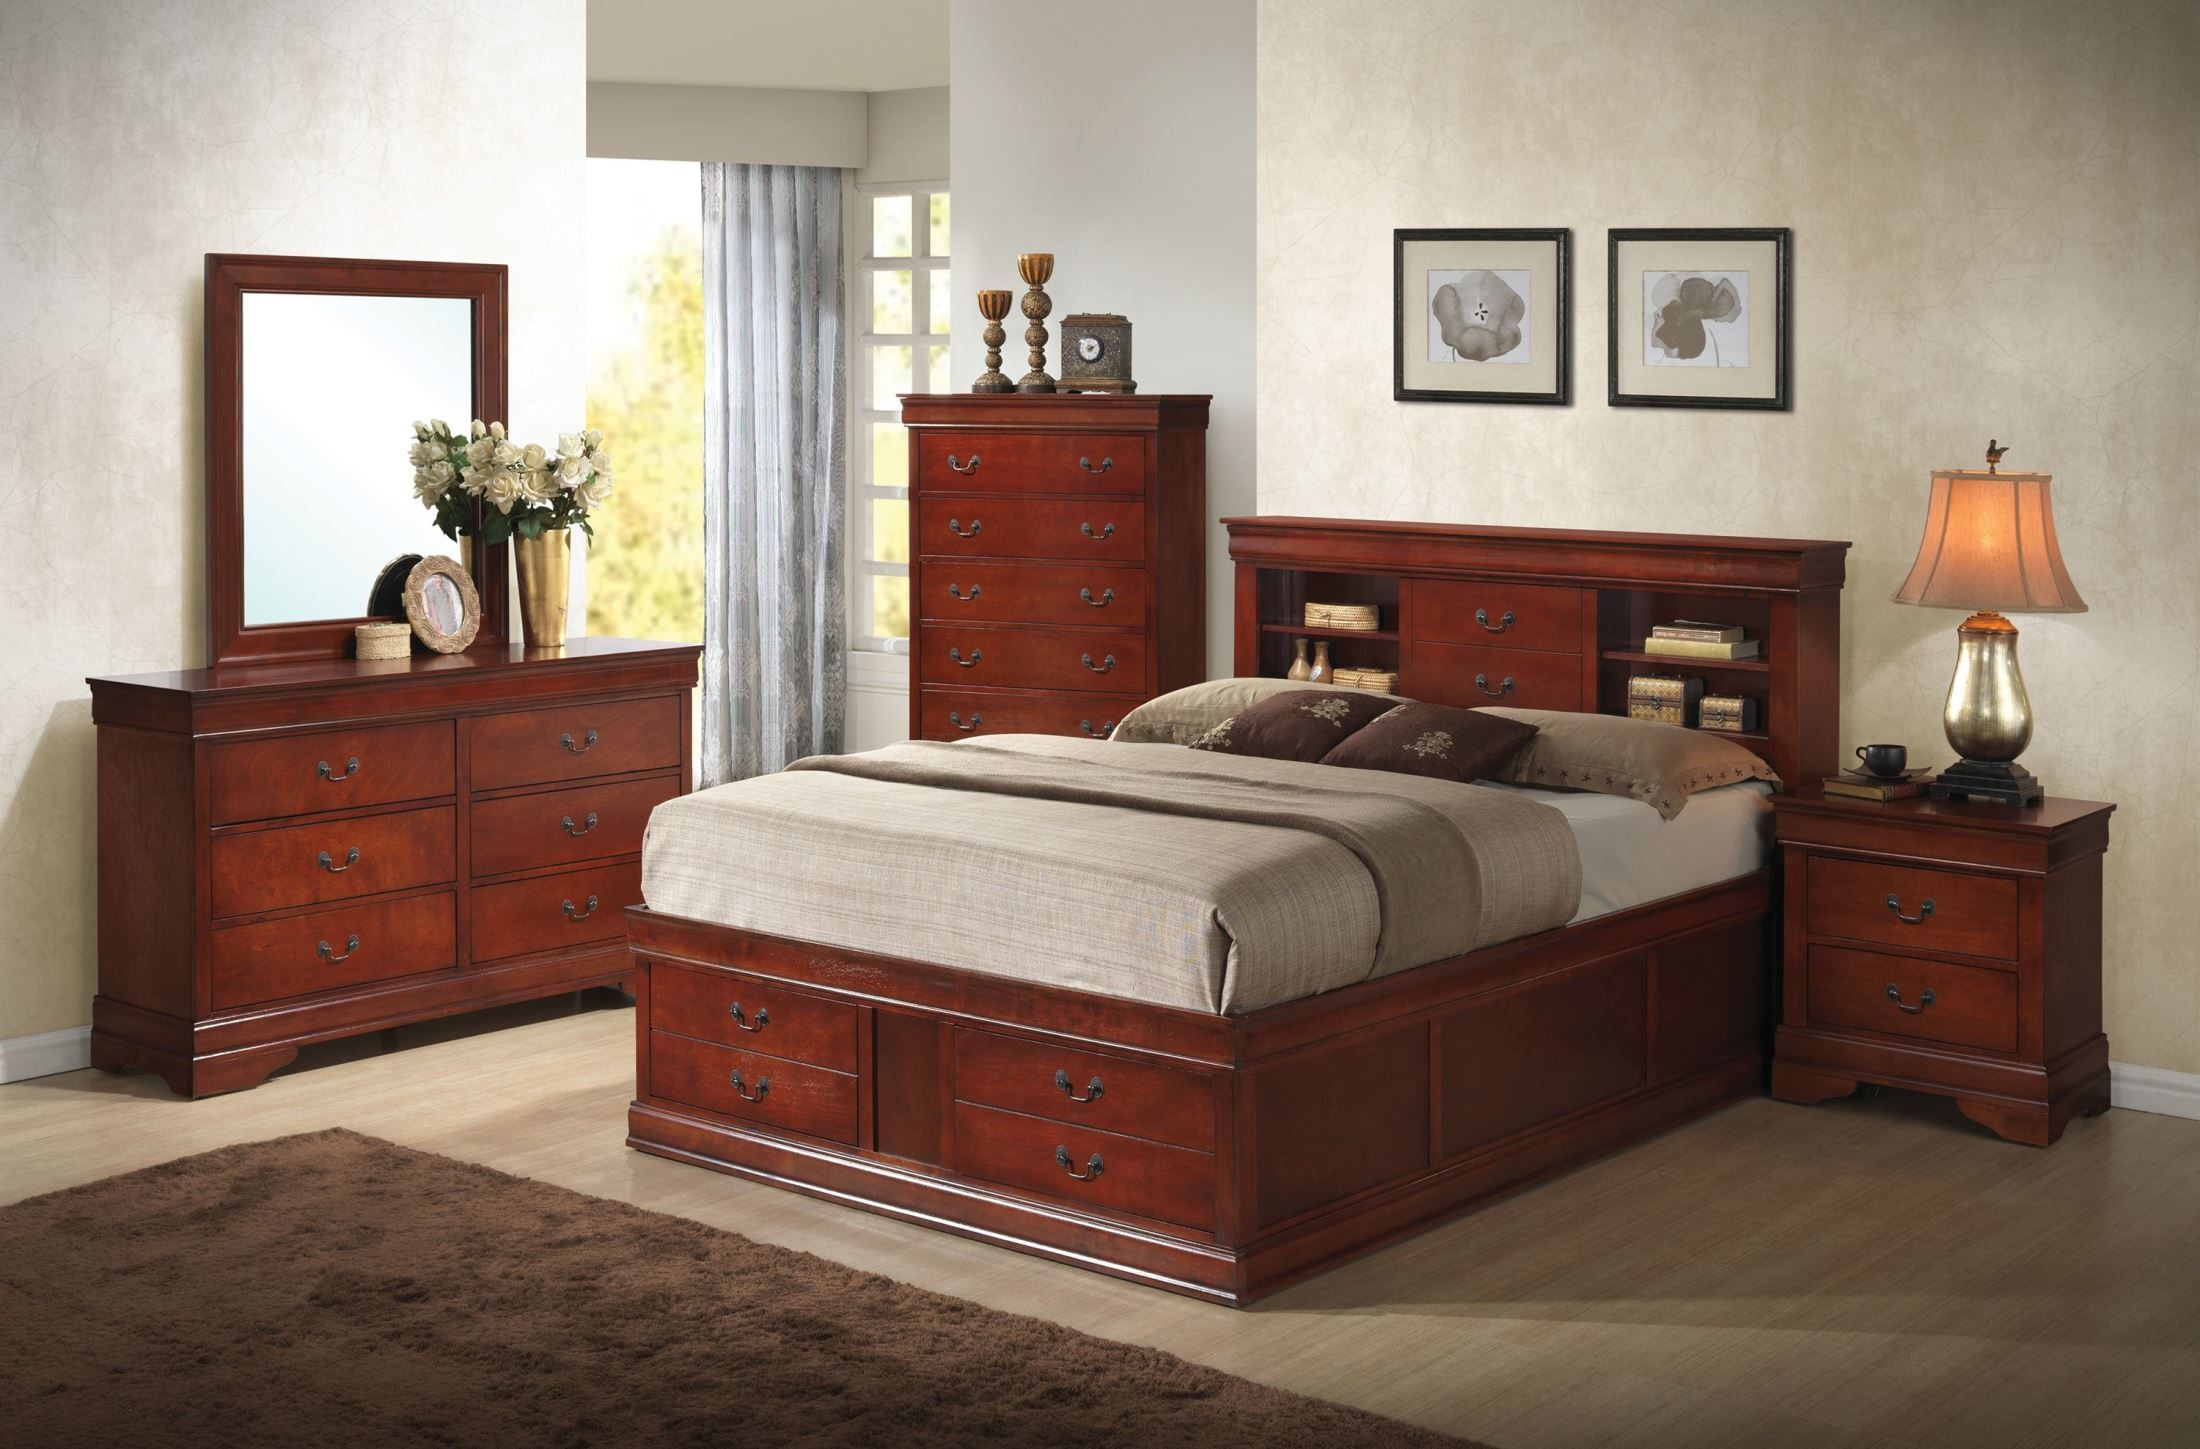 Louis Philippe Cherry Storage Bedroom Set from Coaster | Coleman ...